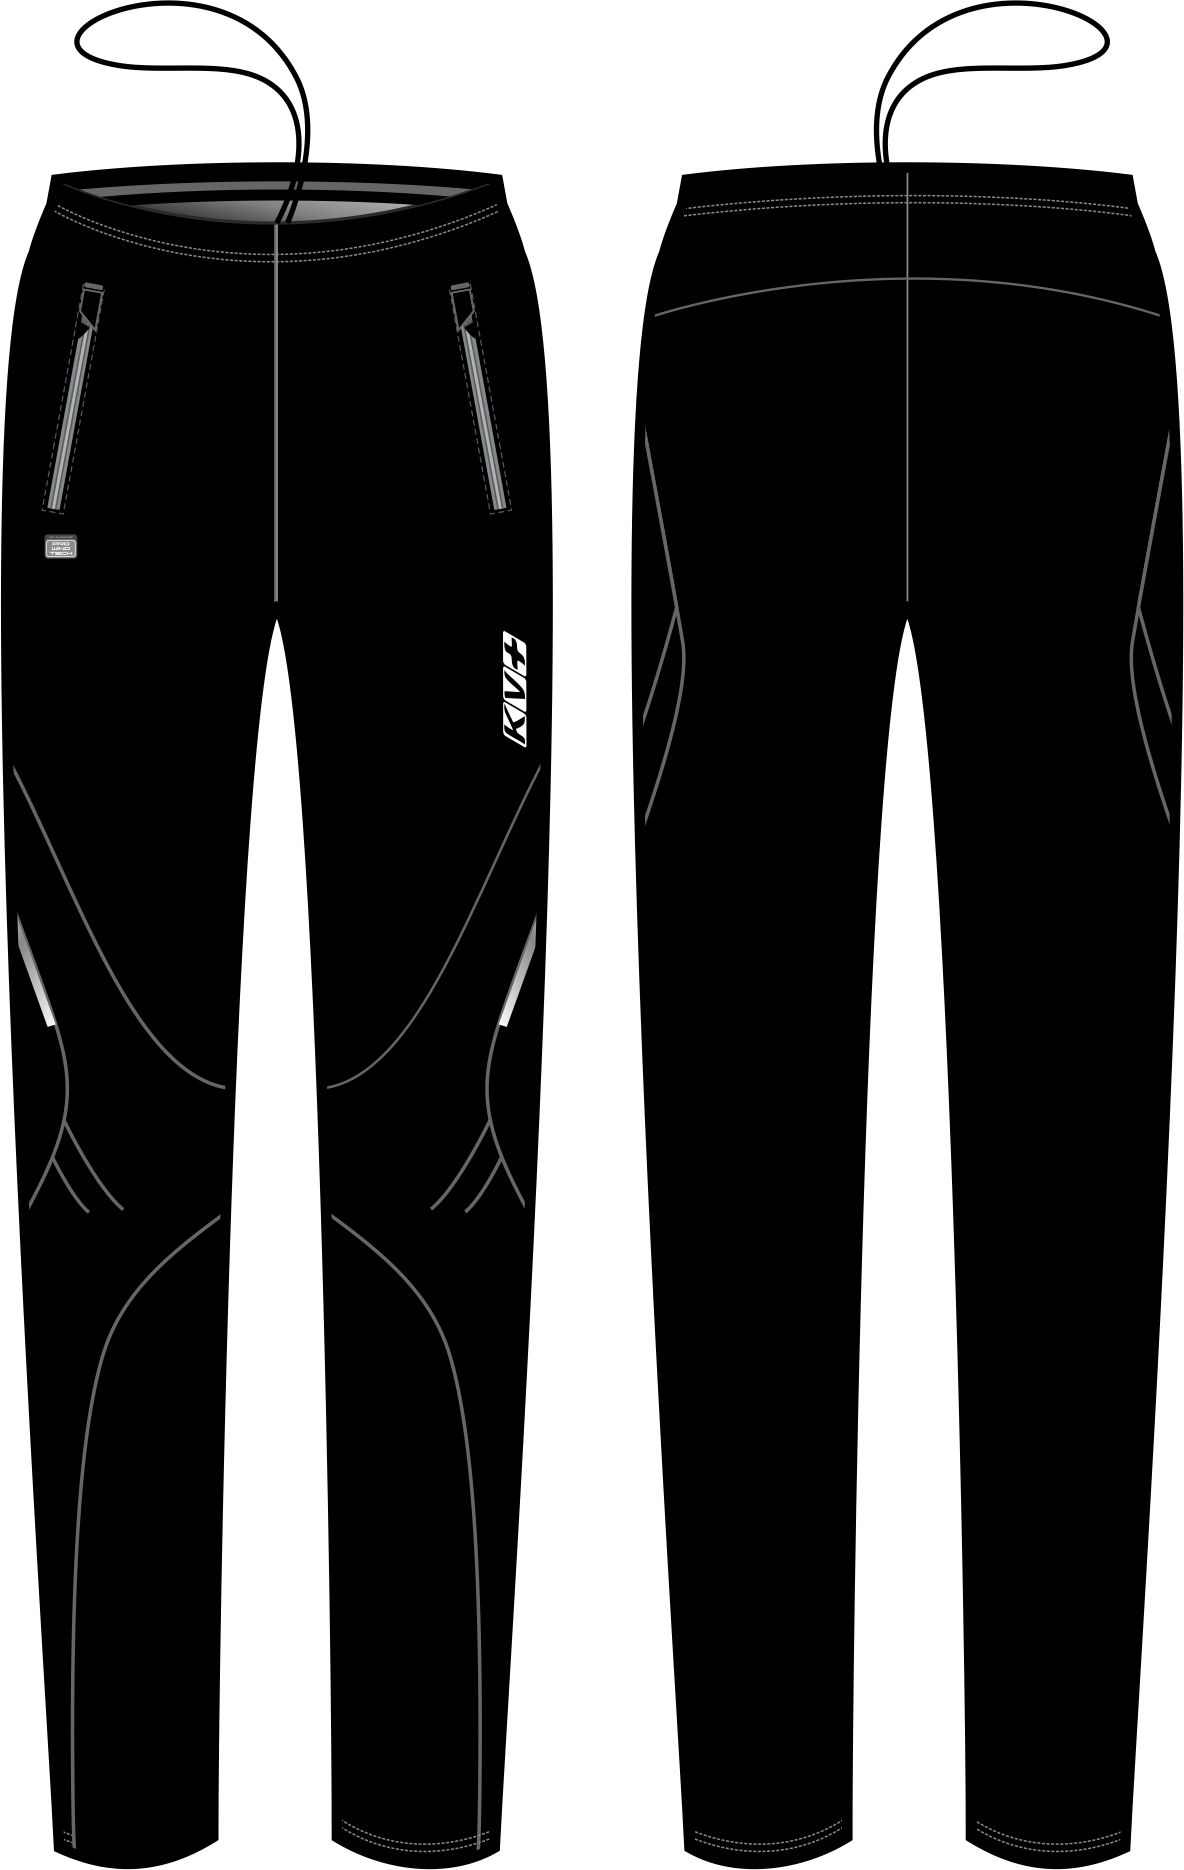 EXCLUSIVE PANTS MAN (black)